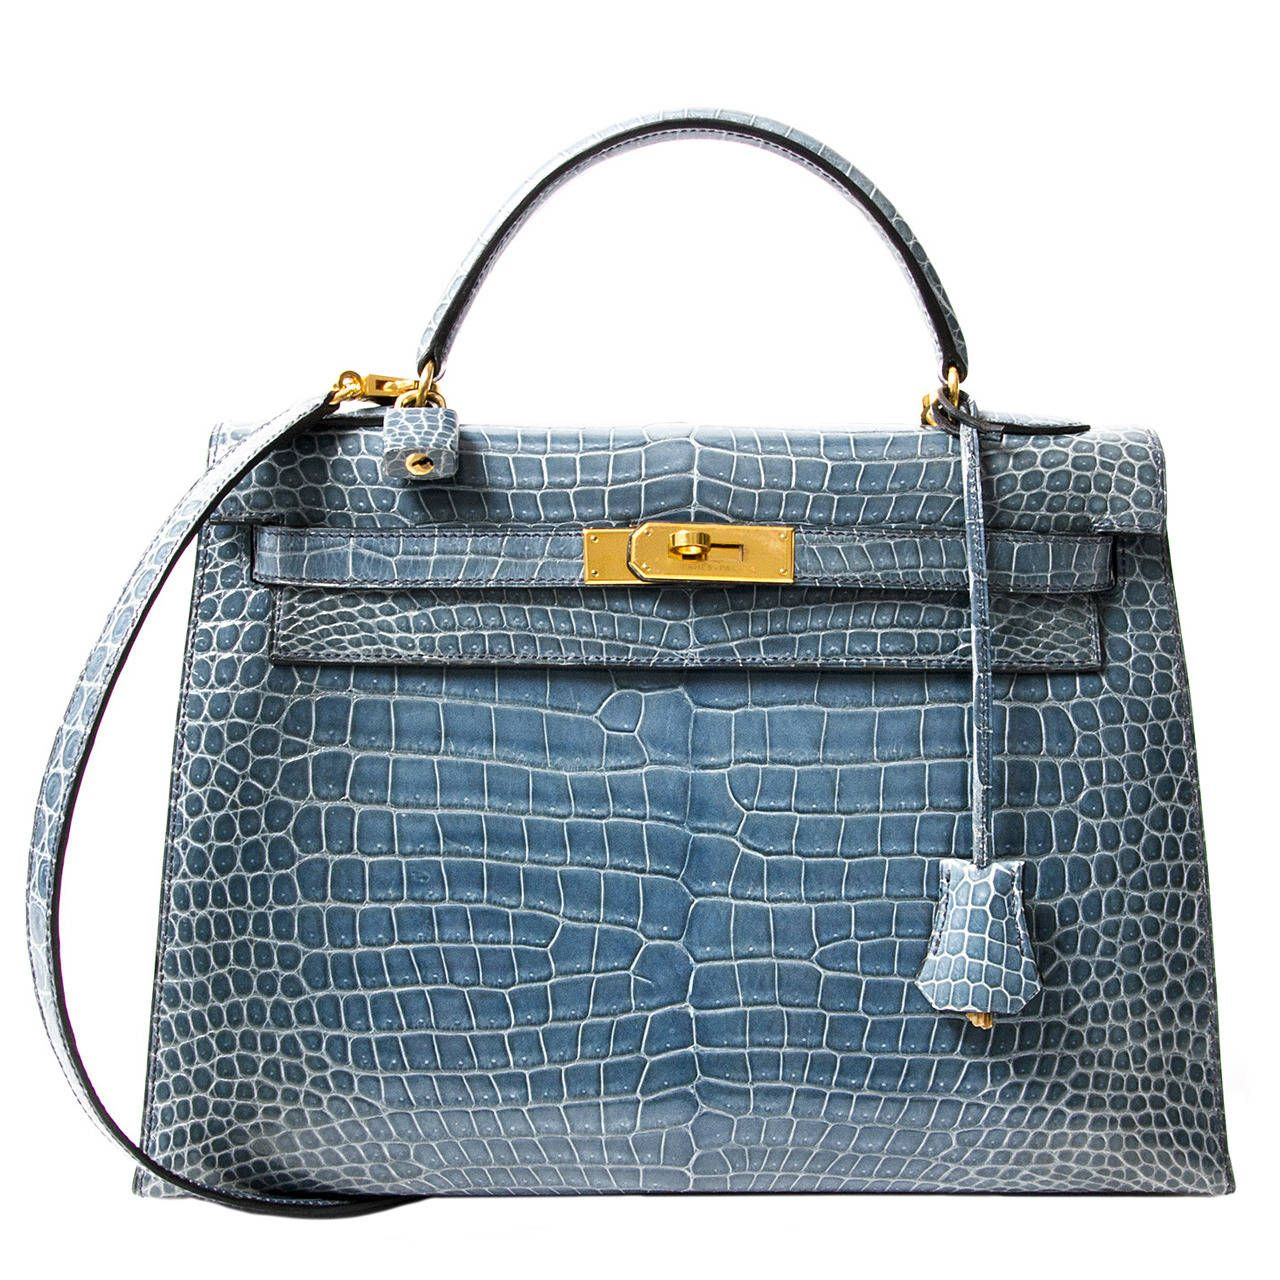 d8c9d7918f405 Rare Hermes Blue Jean P orosus Crocodile 32 Kelly GHW very nice but no way  would I pay the price tag on this one!  47850